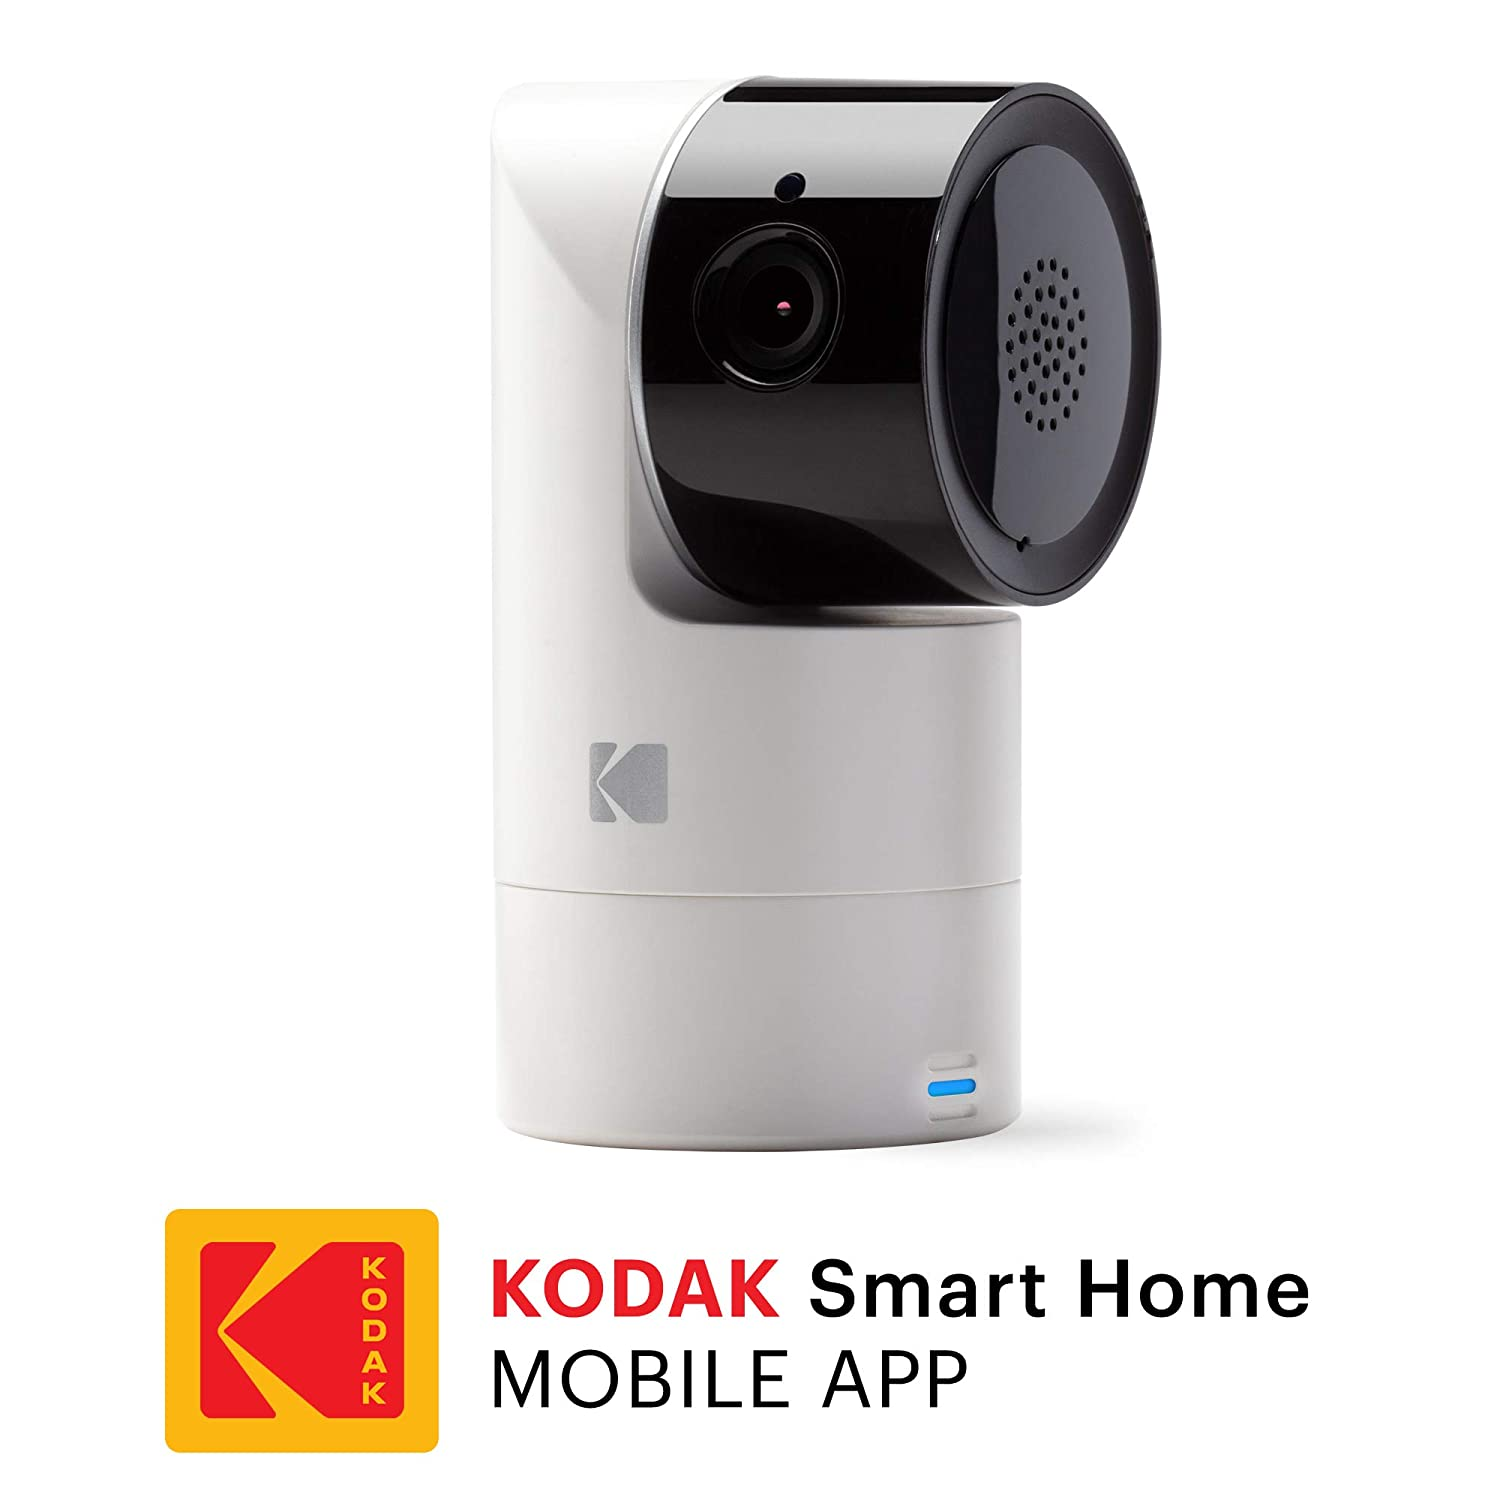 KODAK Cherish C125 Add-On Smart Video Baby Camera with Mobile App, Remote Tilt, Pan and Zoom Two-Way Audio, Night-Vision, Long Range – WiFi Indoor Camera Smart WiFi Baby Monitor Add-on